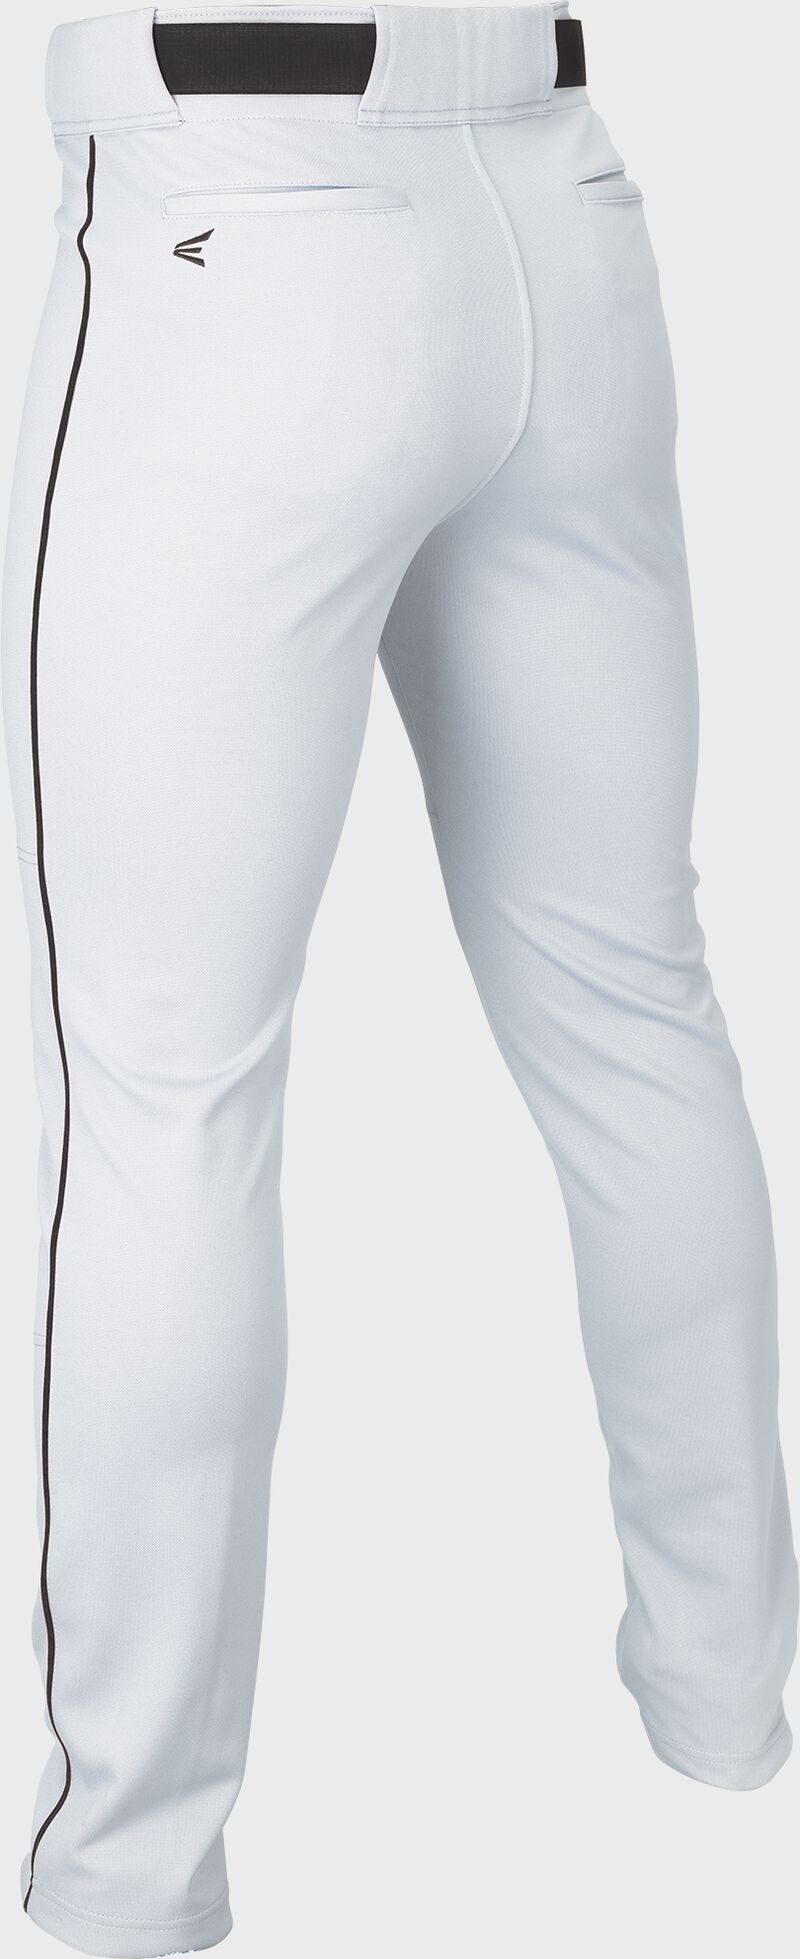 RIVAL+ PANT ADULT PIPED WHITE/BLACK XXL